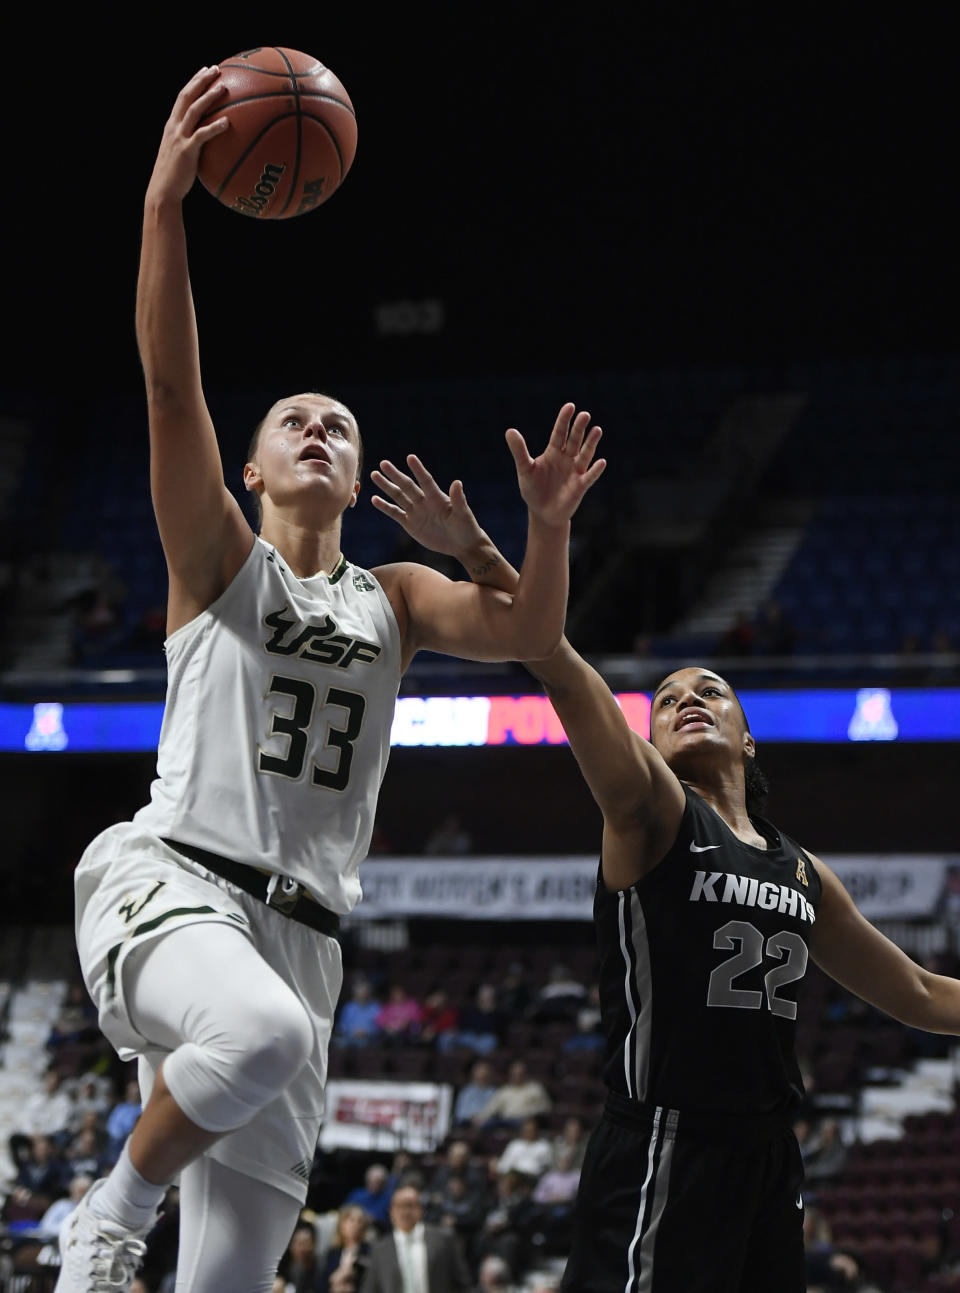 South Florida's Kitija Laksa, left, shoots as Central Florida's Aliyah Gregory, right, defends, during the first half of an NCAA college basketball game in the American Athletic Conference tournament semifinals at Mohegan Sun Arena, Monday, March 5, 2018, in Uncasville, Conn. (AP Photo/Jessica Hill)